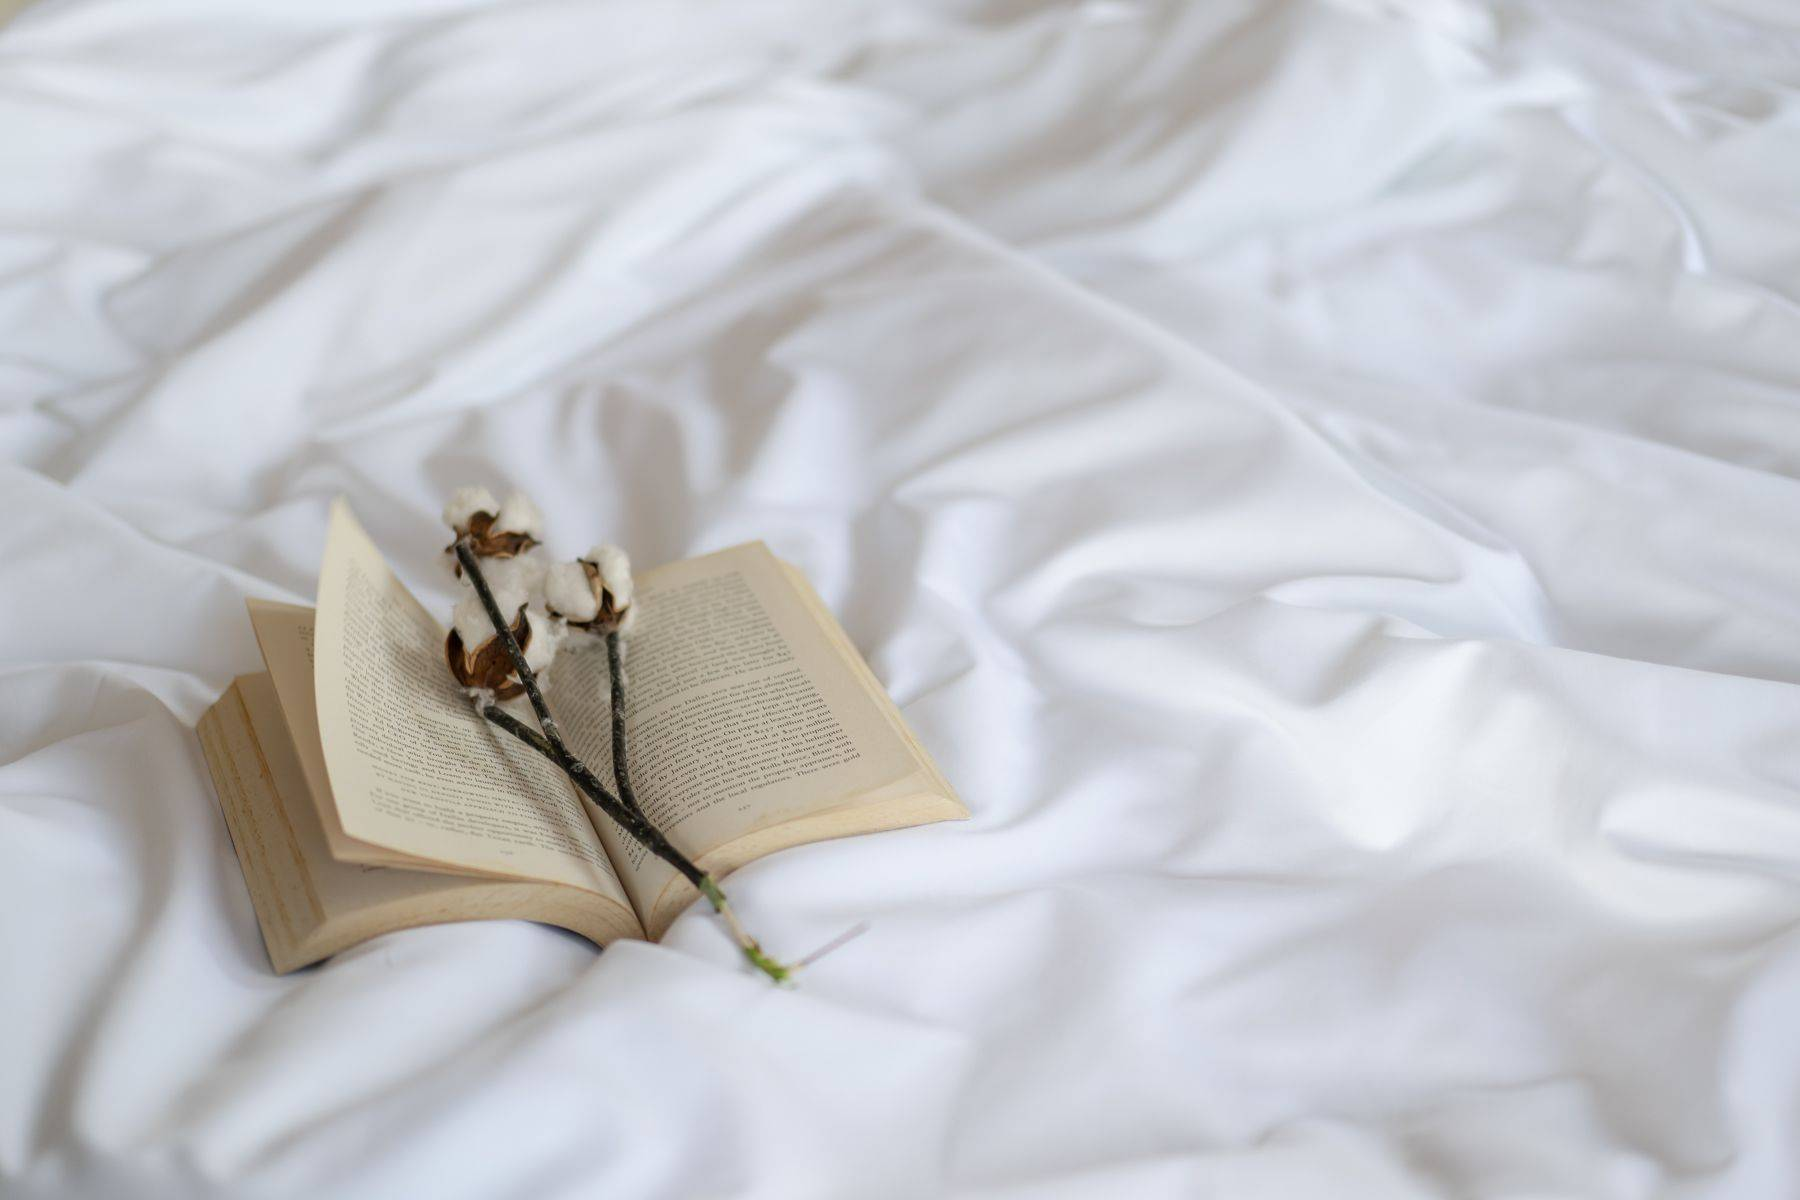 A book and cotton plant on a bed, featuring Weavve's Cotton Sheets in White